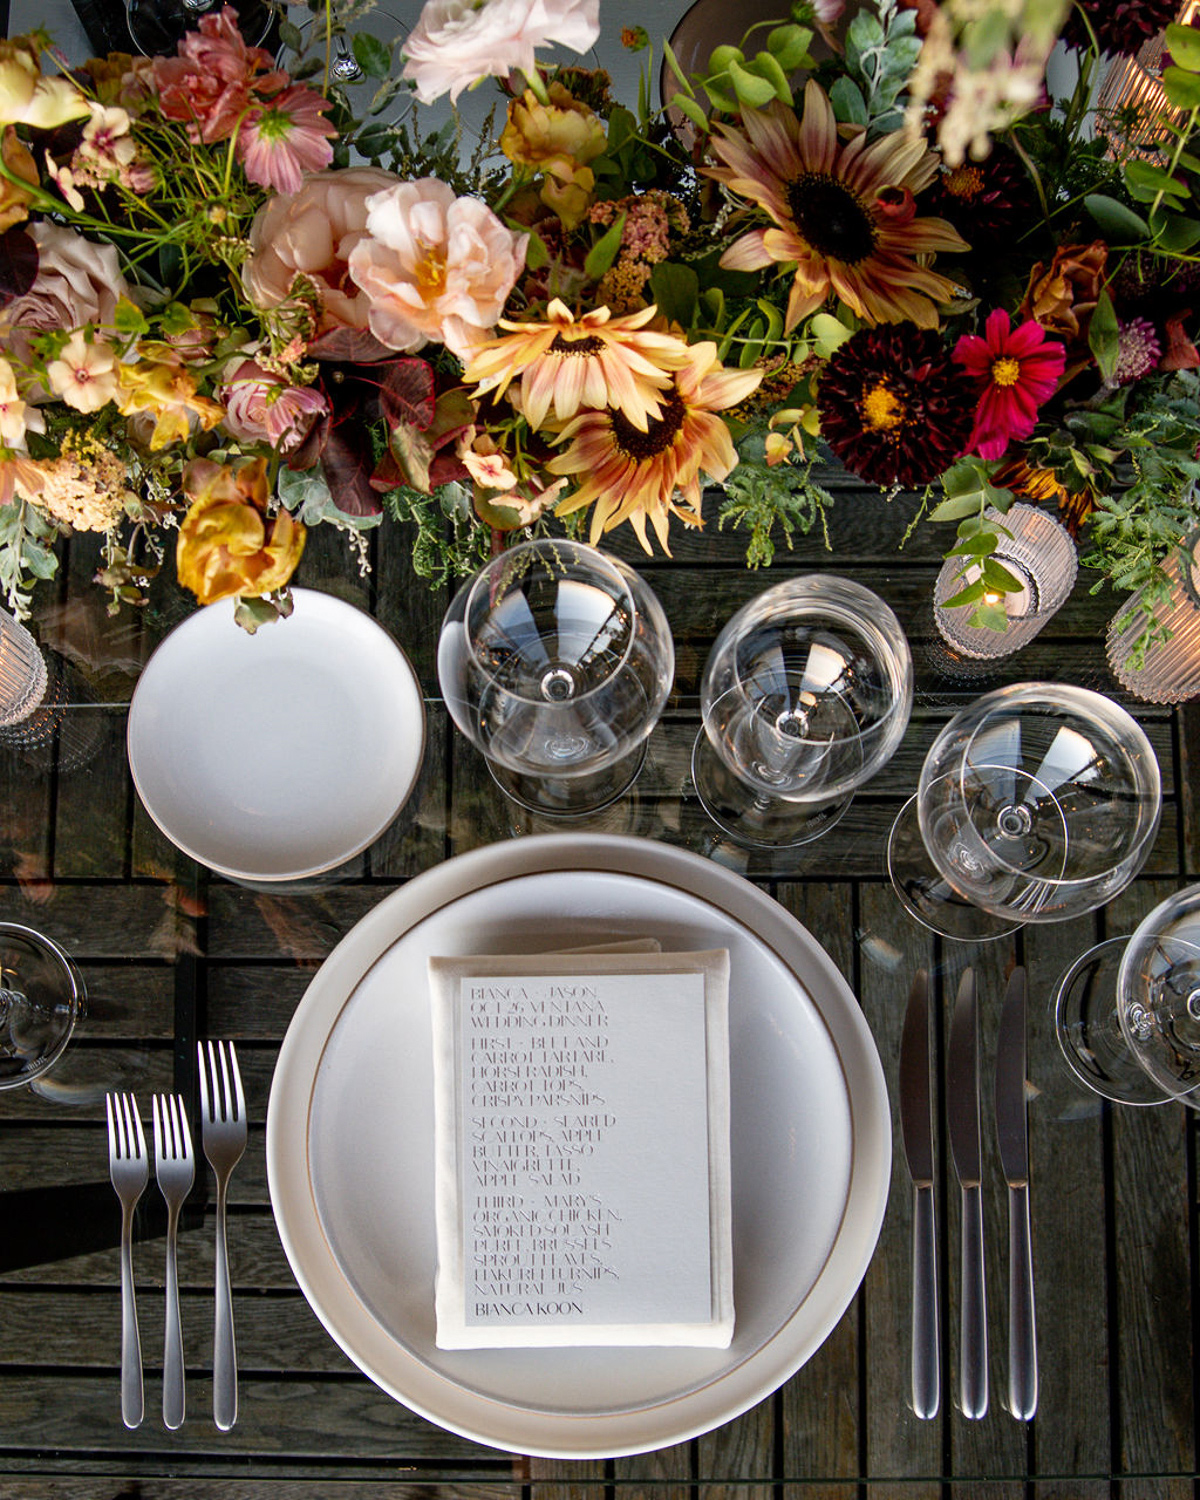 wedding place setting with white plates and warm tones flowers